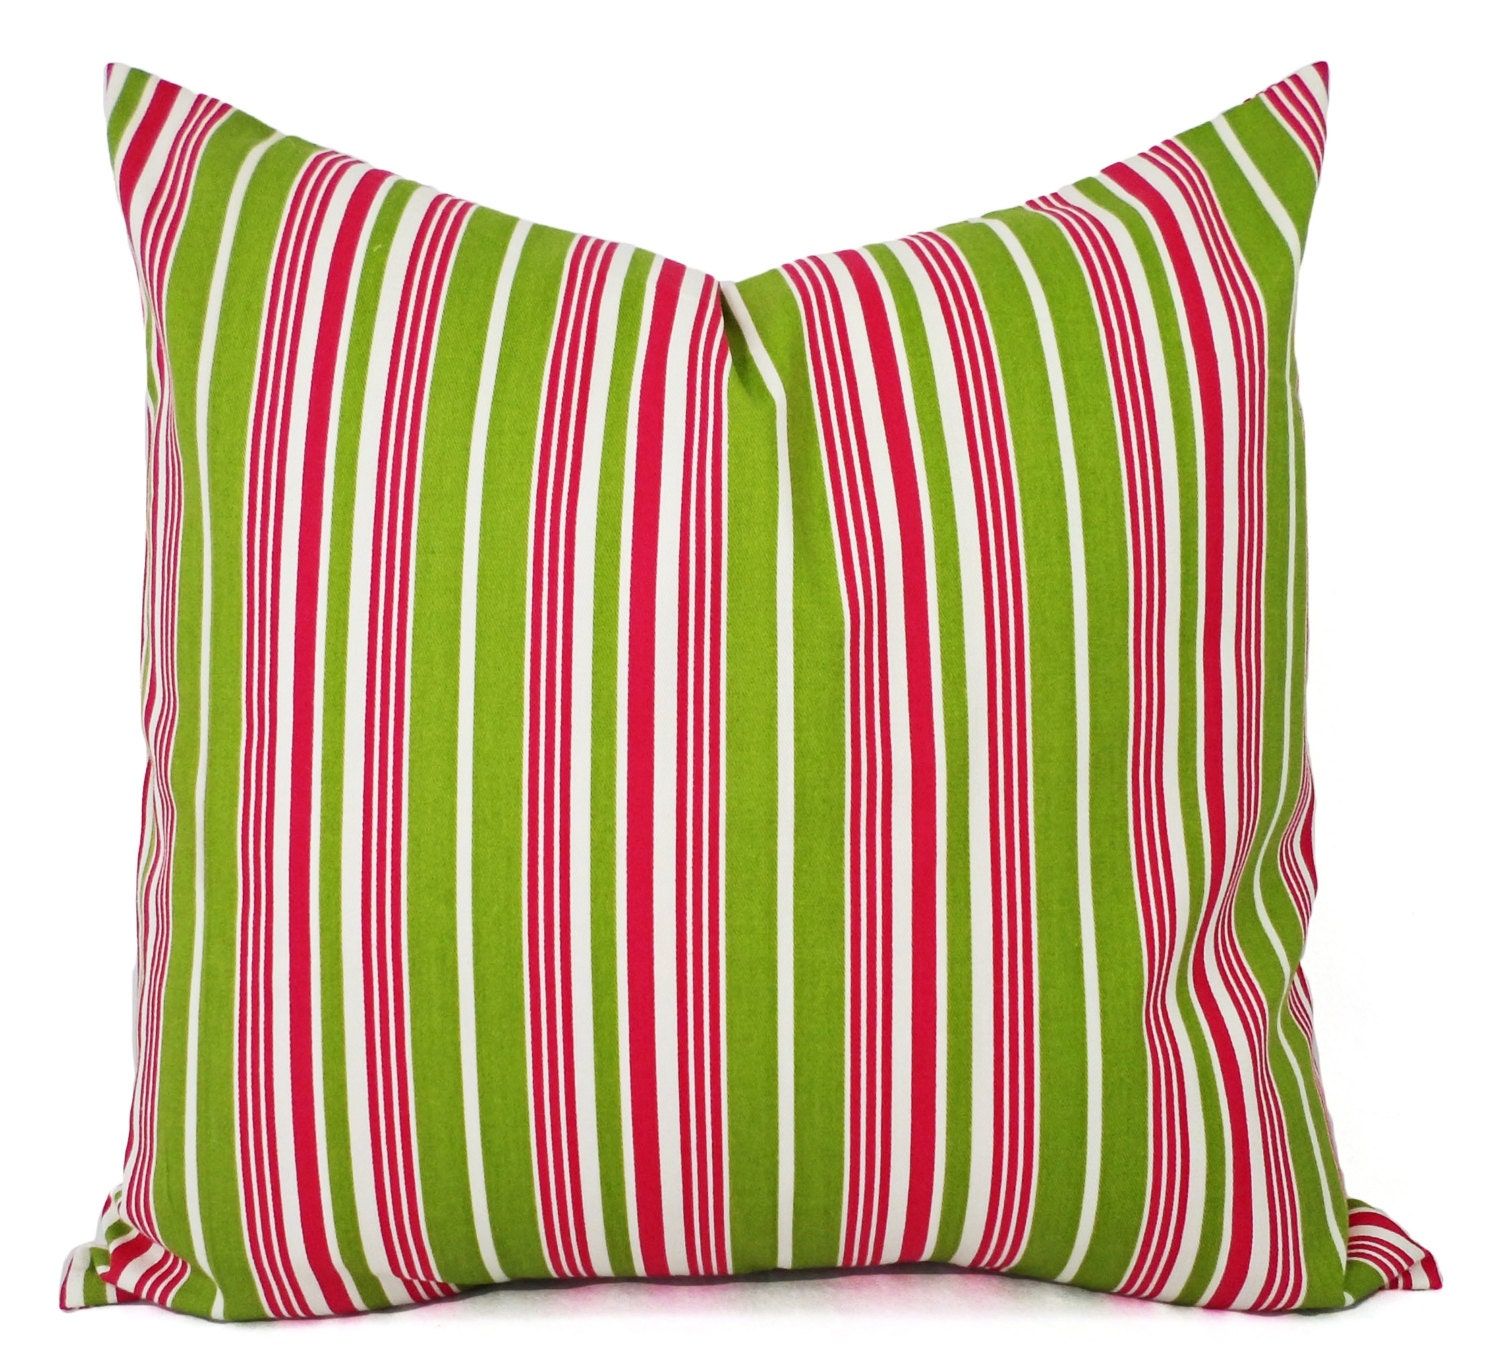 Throw Pillows In Clearance : CLEARANCE Decorative Pillow Cover Green and Pink Pillow